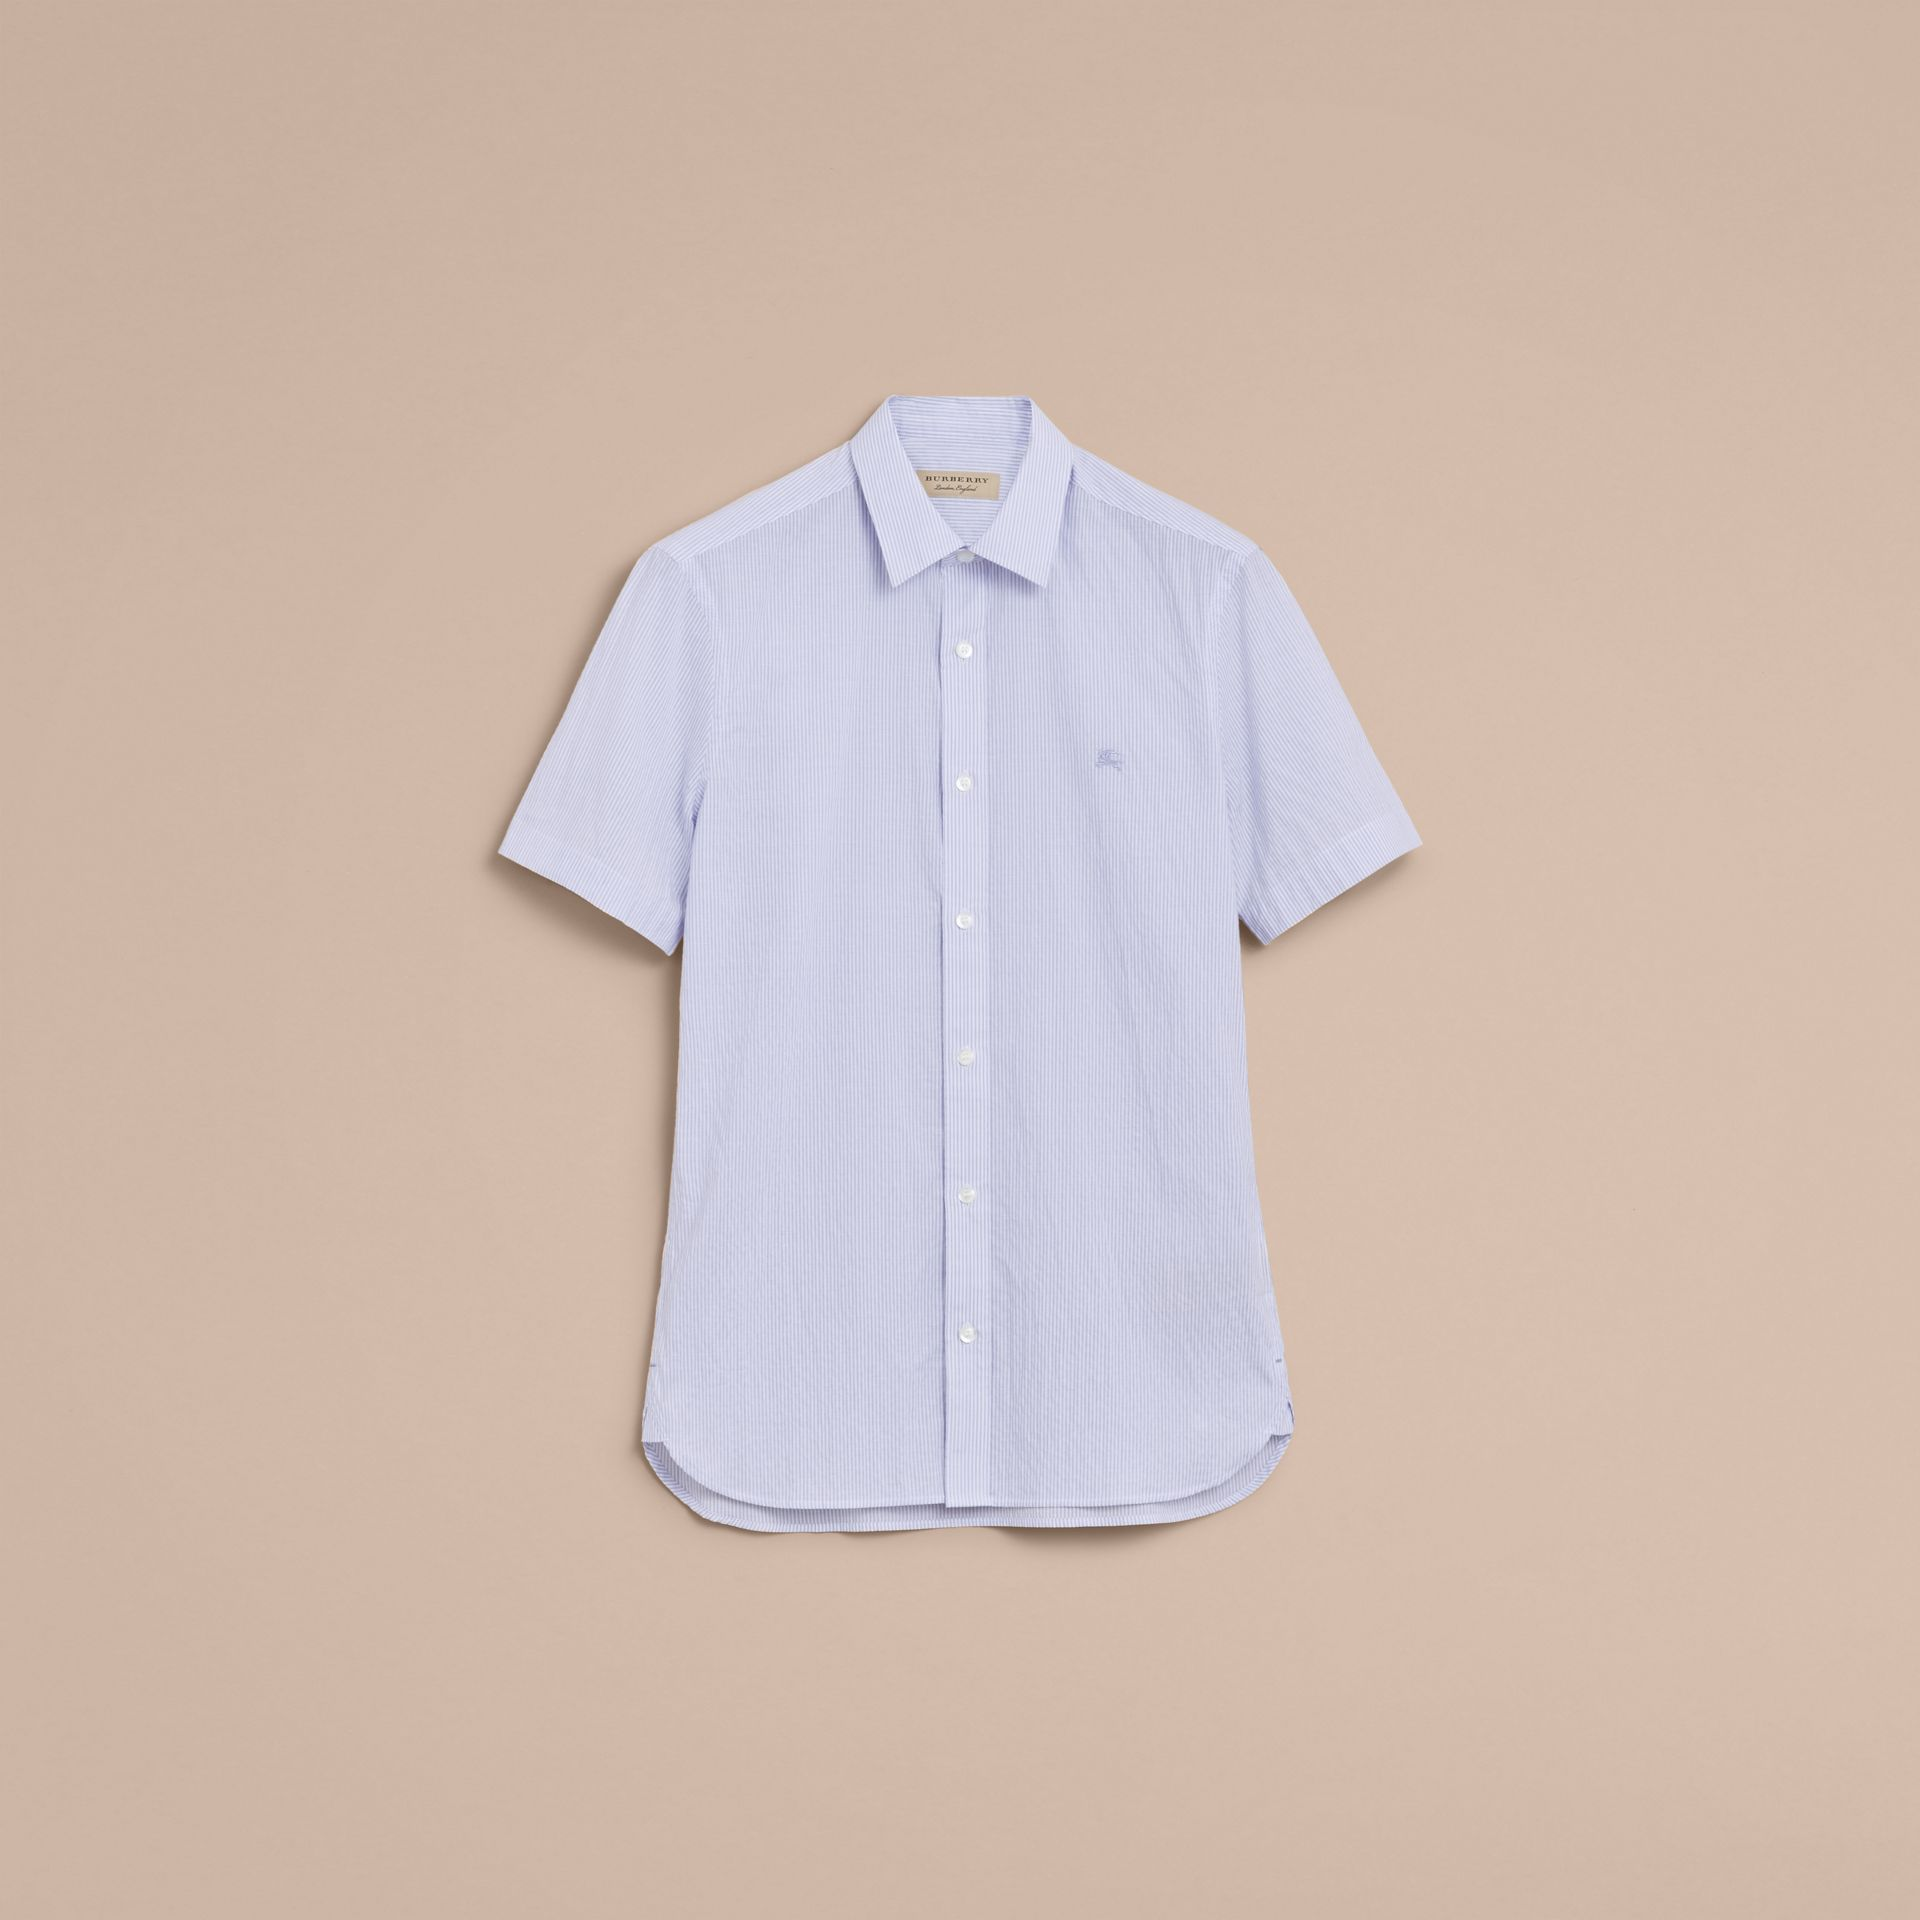 Short-sleeve Striped Cotton Seersucker Shirt in Light Blue - Men | Burberry - gallery image 4